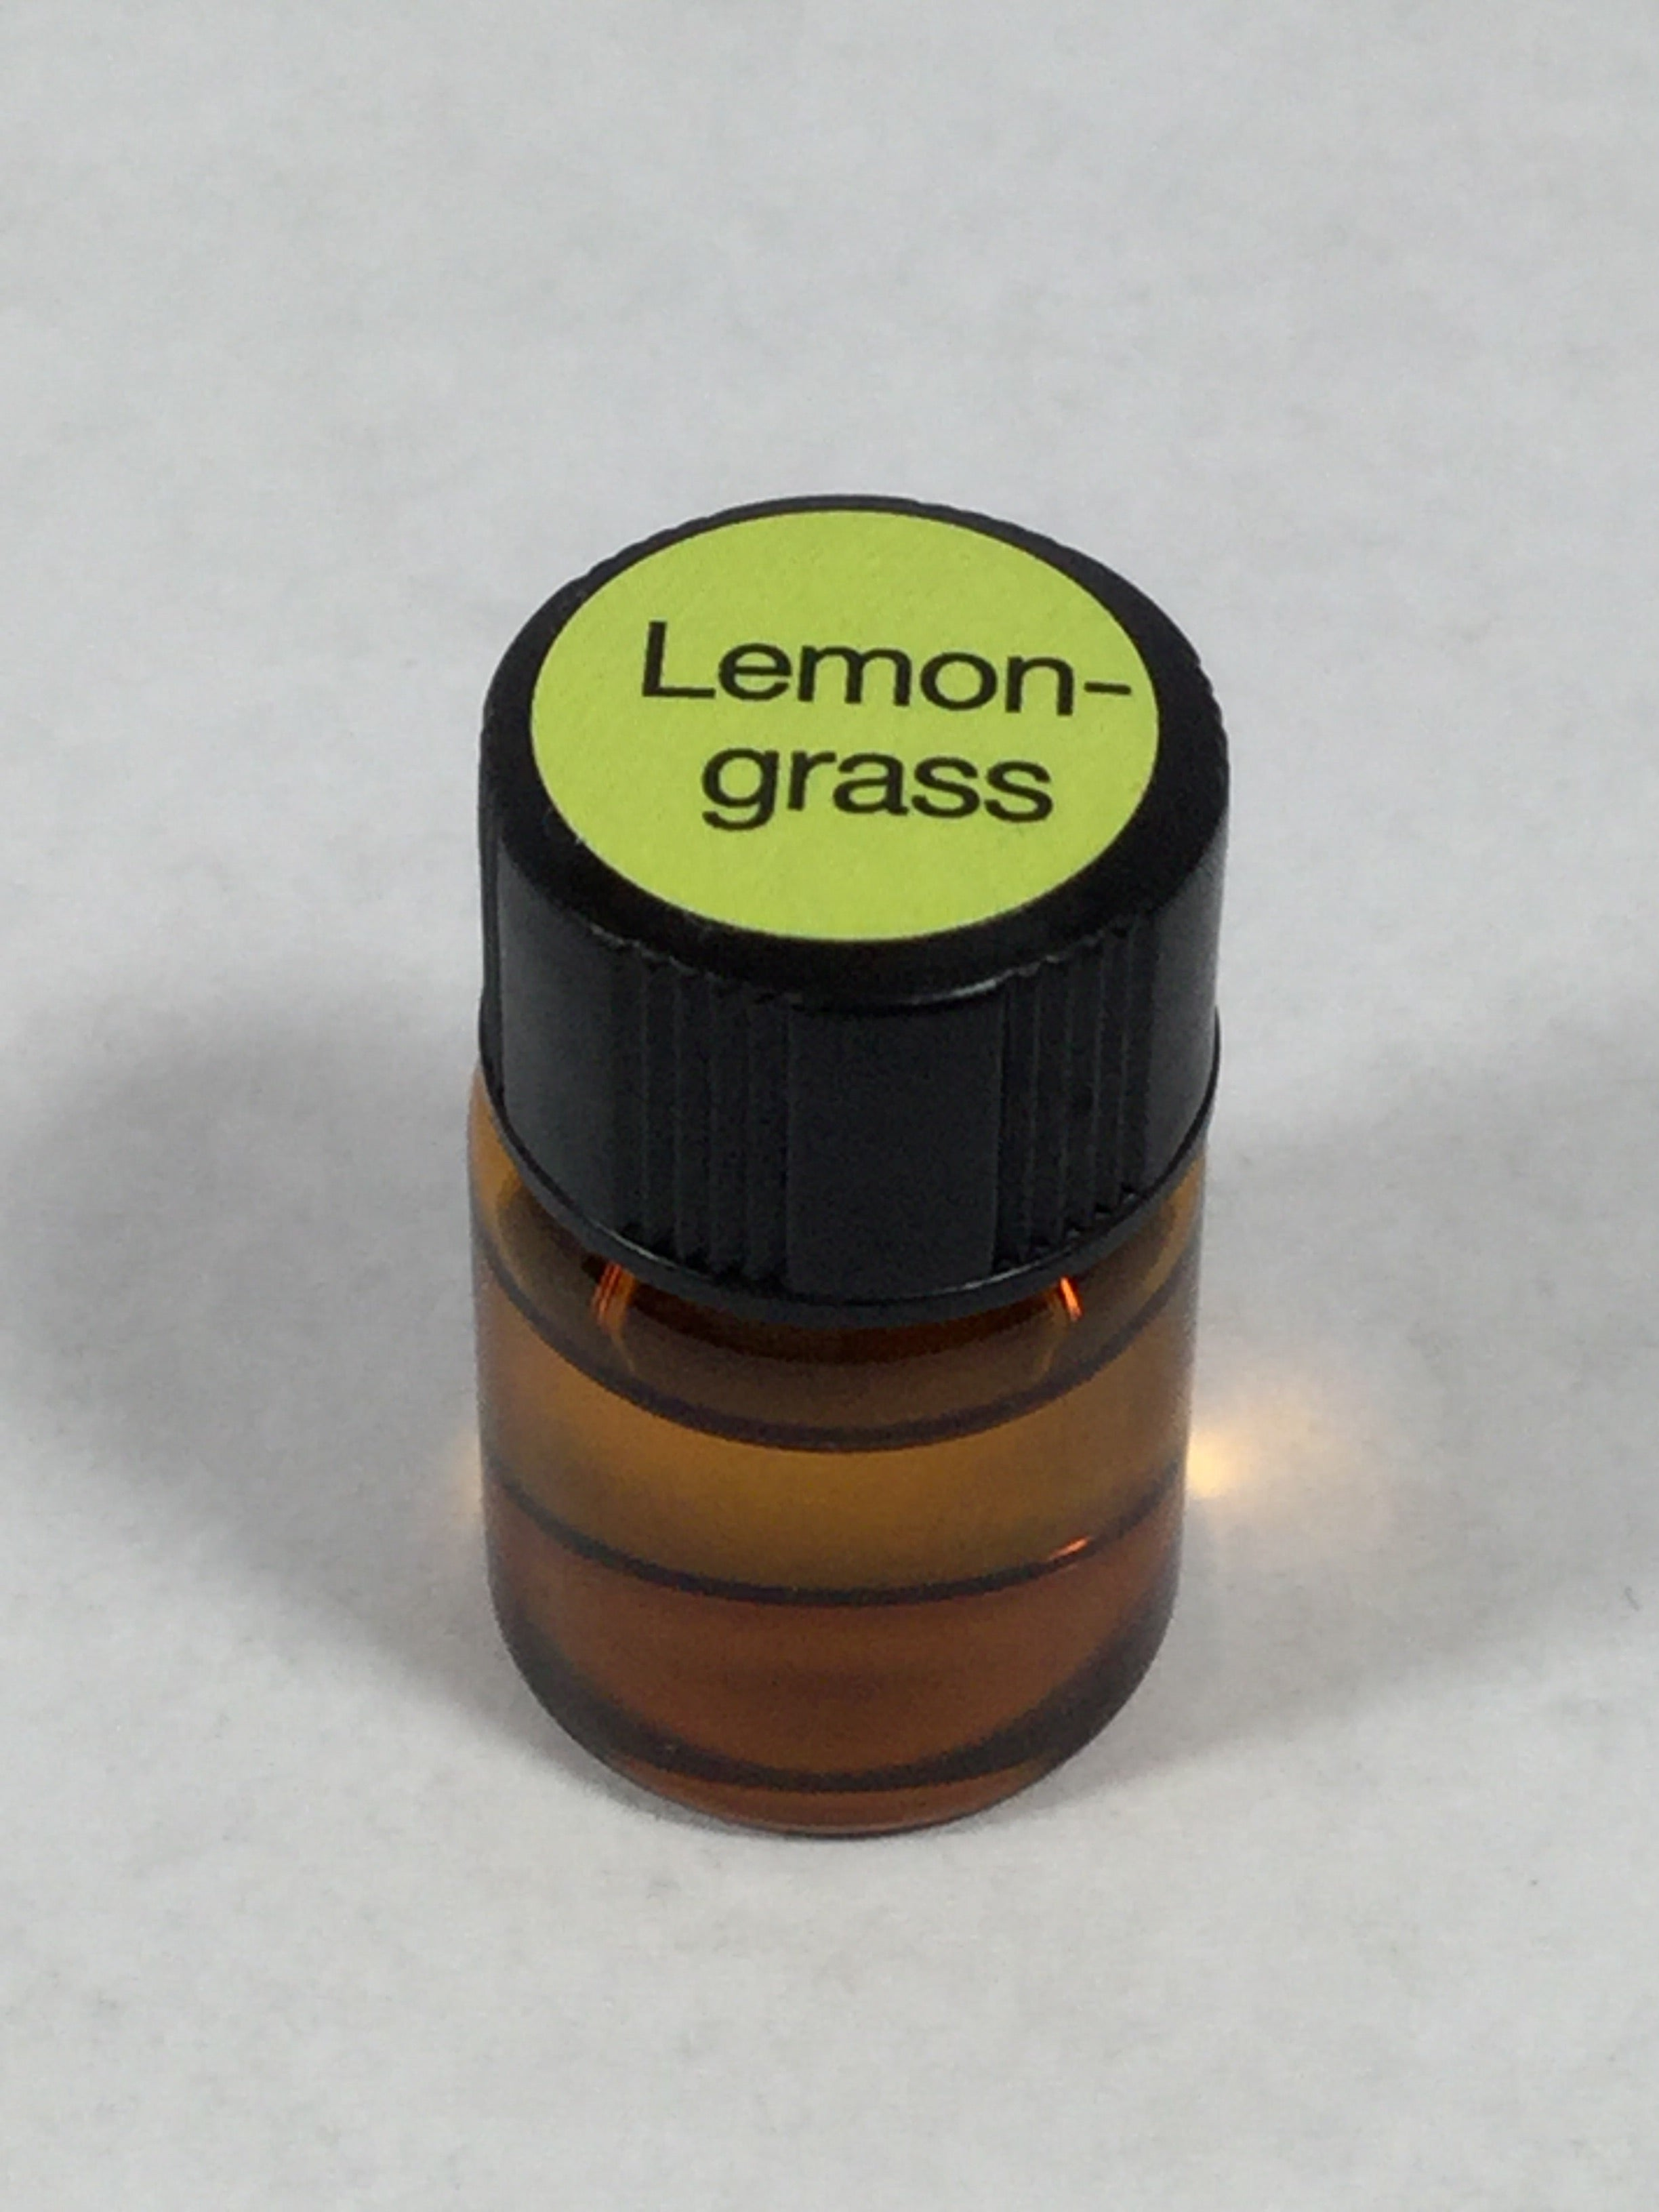 Oil: 2ml Lemongrass dōTerra Essential oil